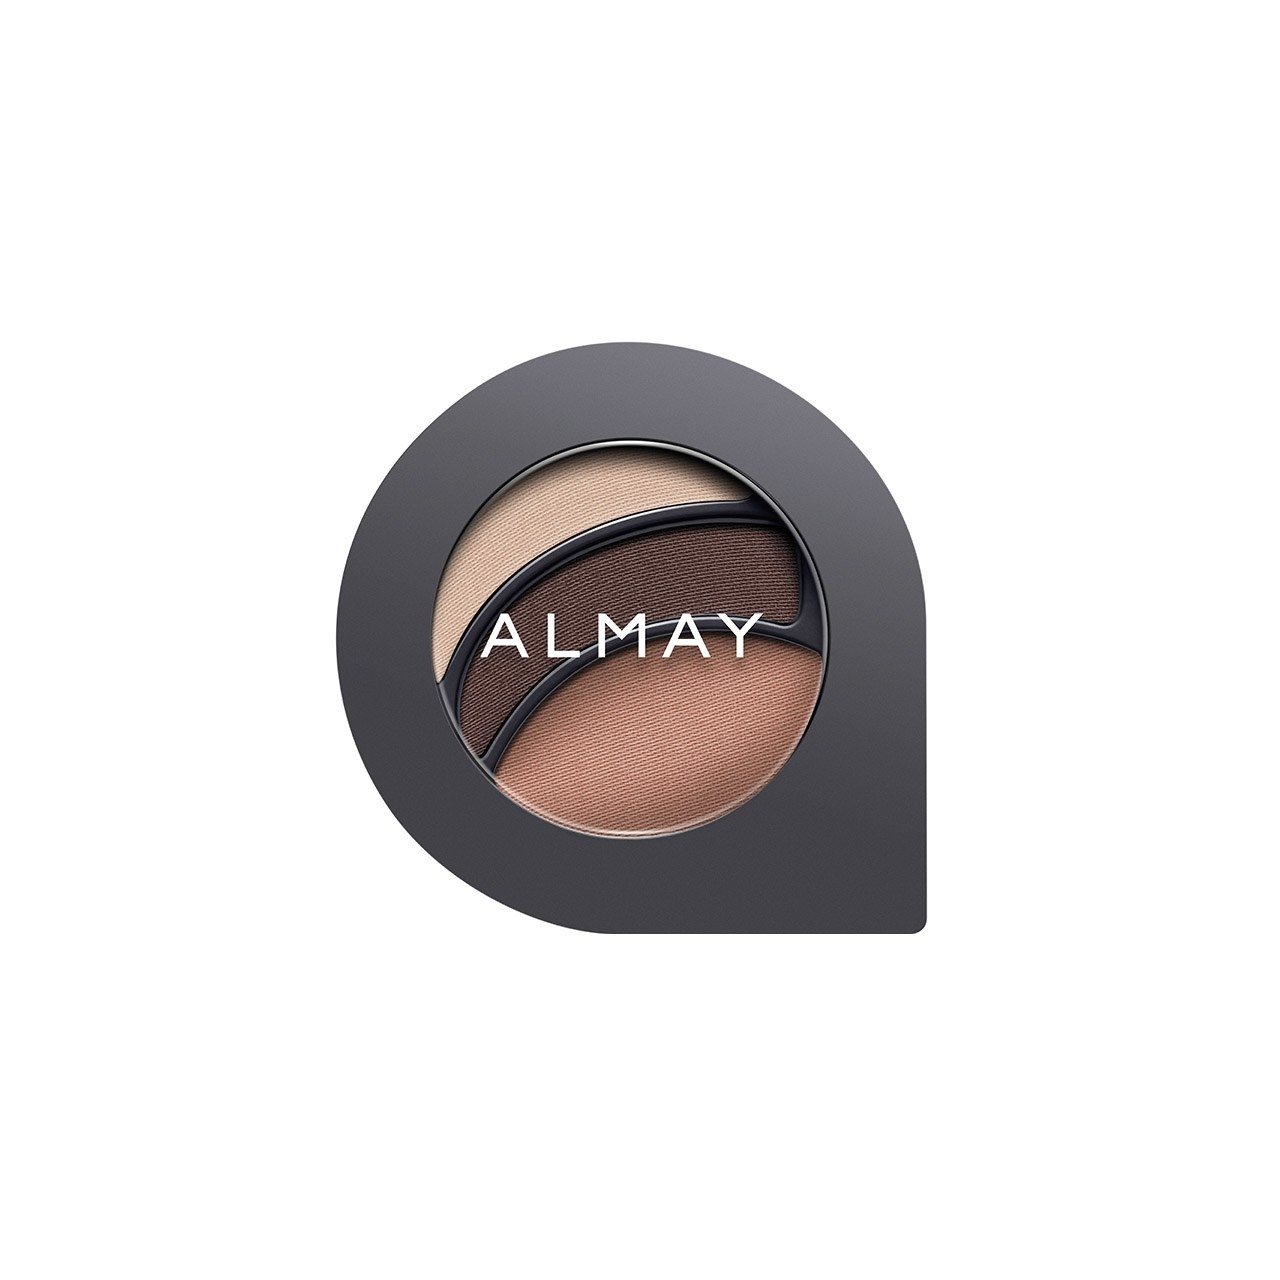 Almay Intense I-Color Everyday Neutrals For Blue Eyes Review   Allure throughout How To Apply Almay Eyeshadow For Blue Eyes